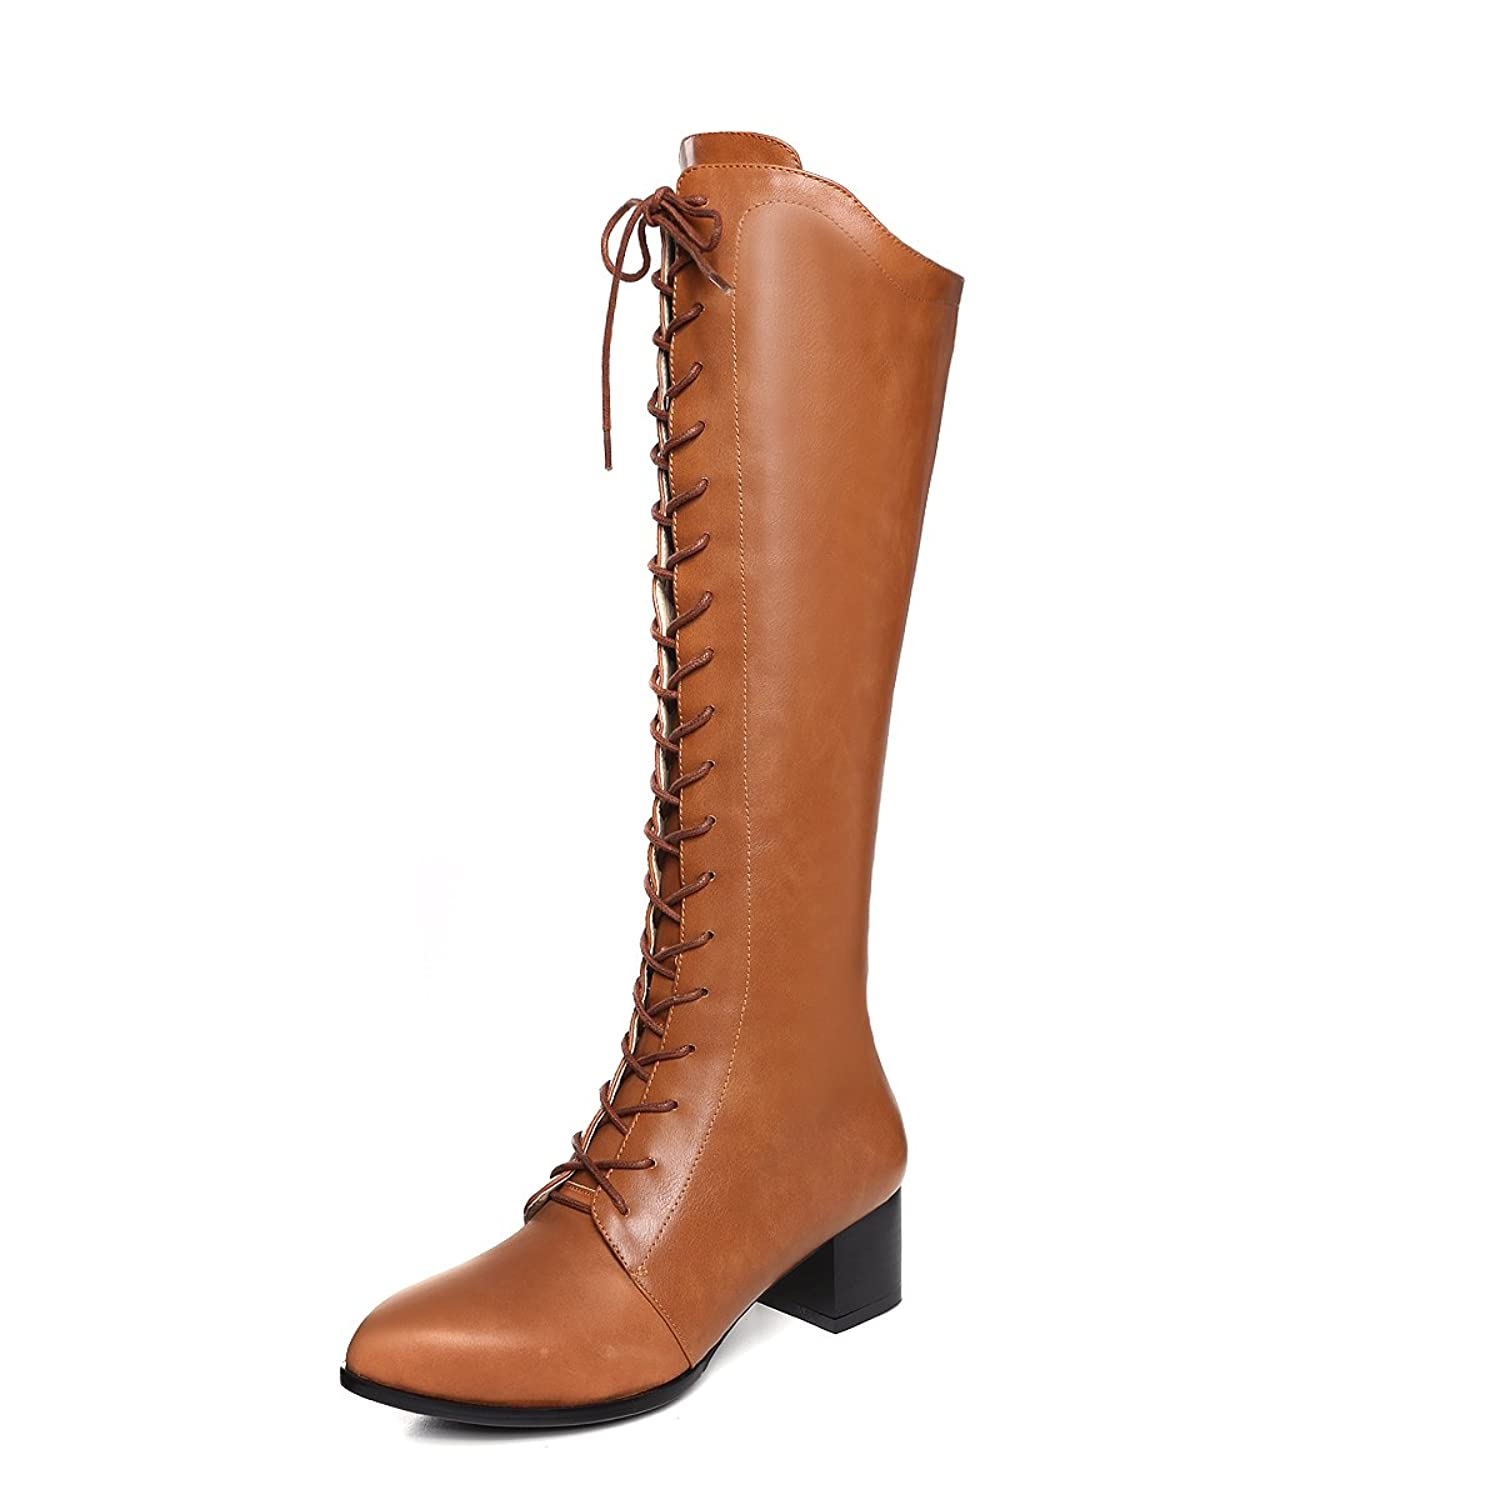 1920s Style Shoes NIQI Genuine Leather Womens Mid Heel Knee High Booties Side Zipper Combat Military Motorcycle Boots $89.00 AT vintagedancer.com